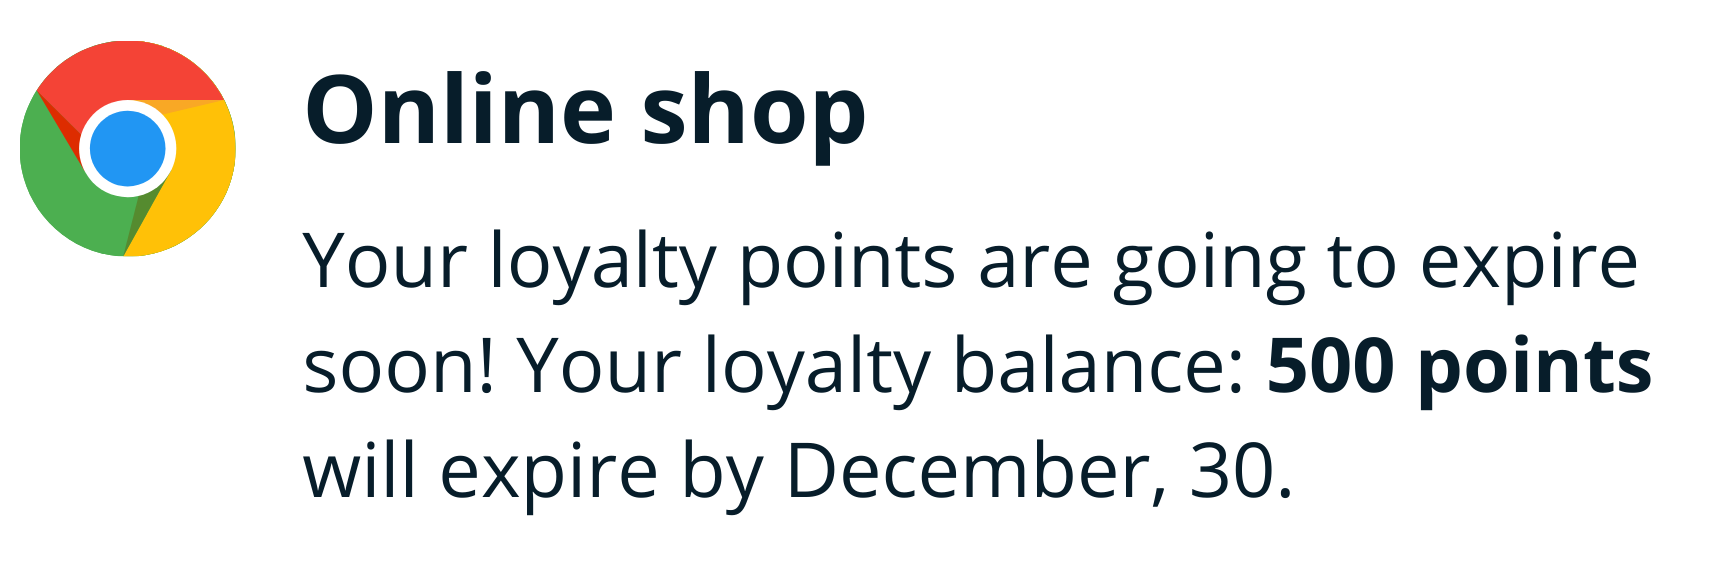 Smart loyalty notifications example